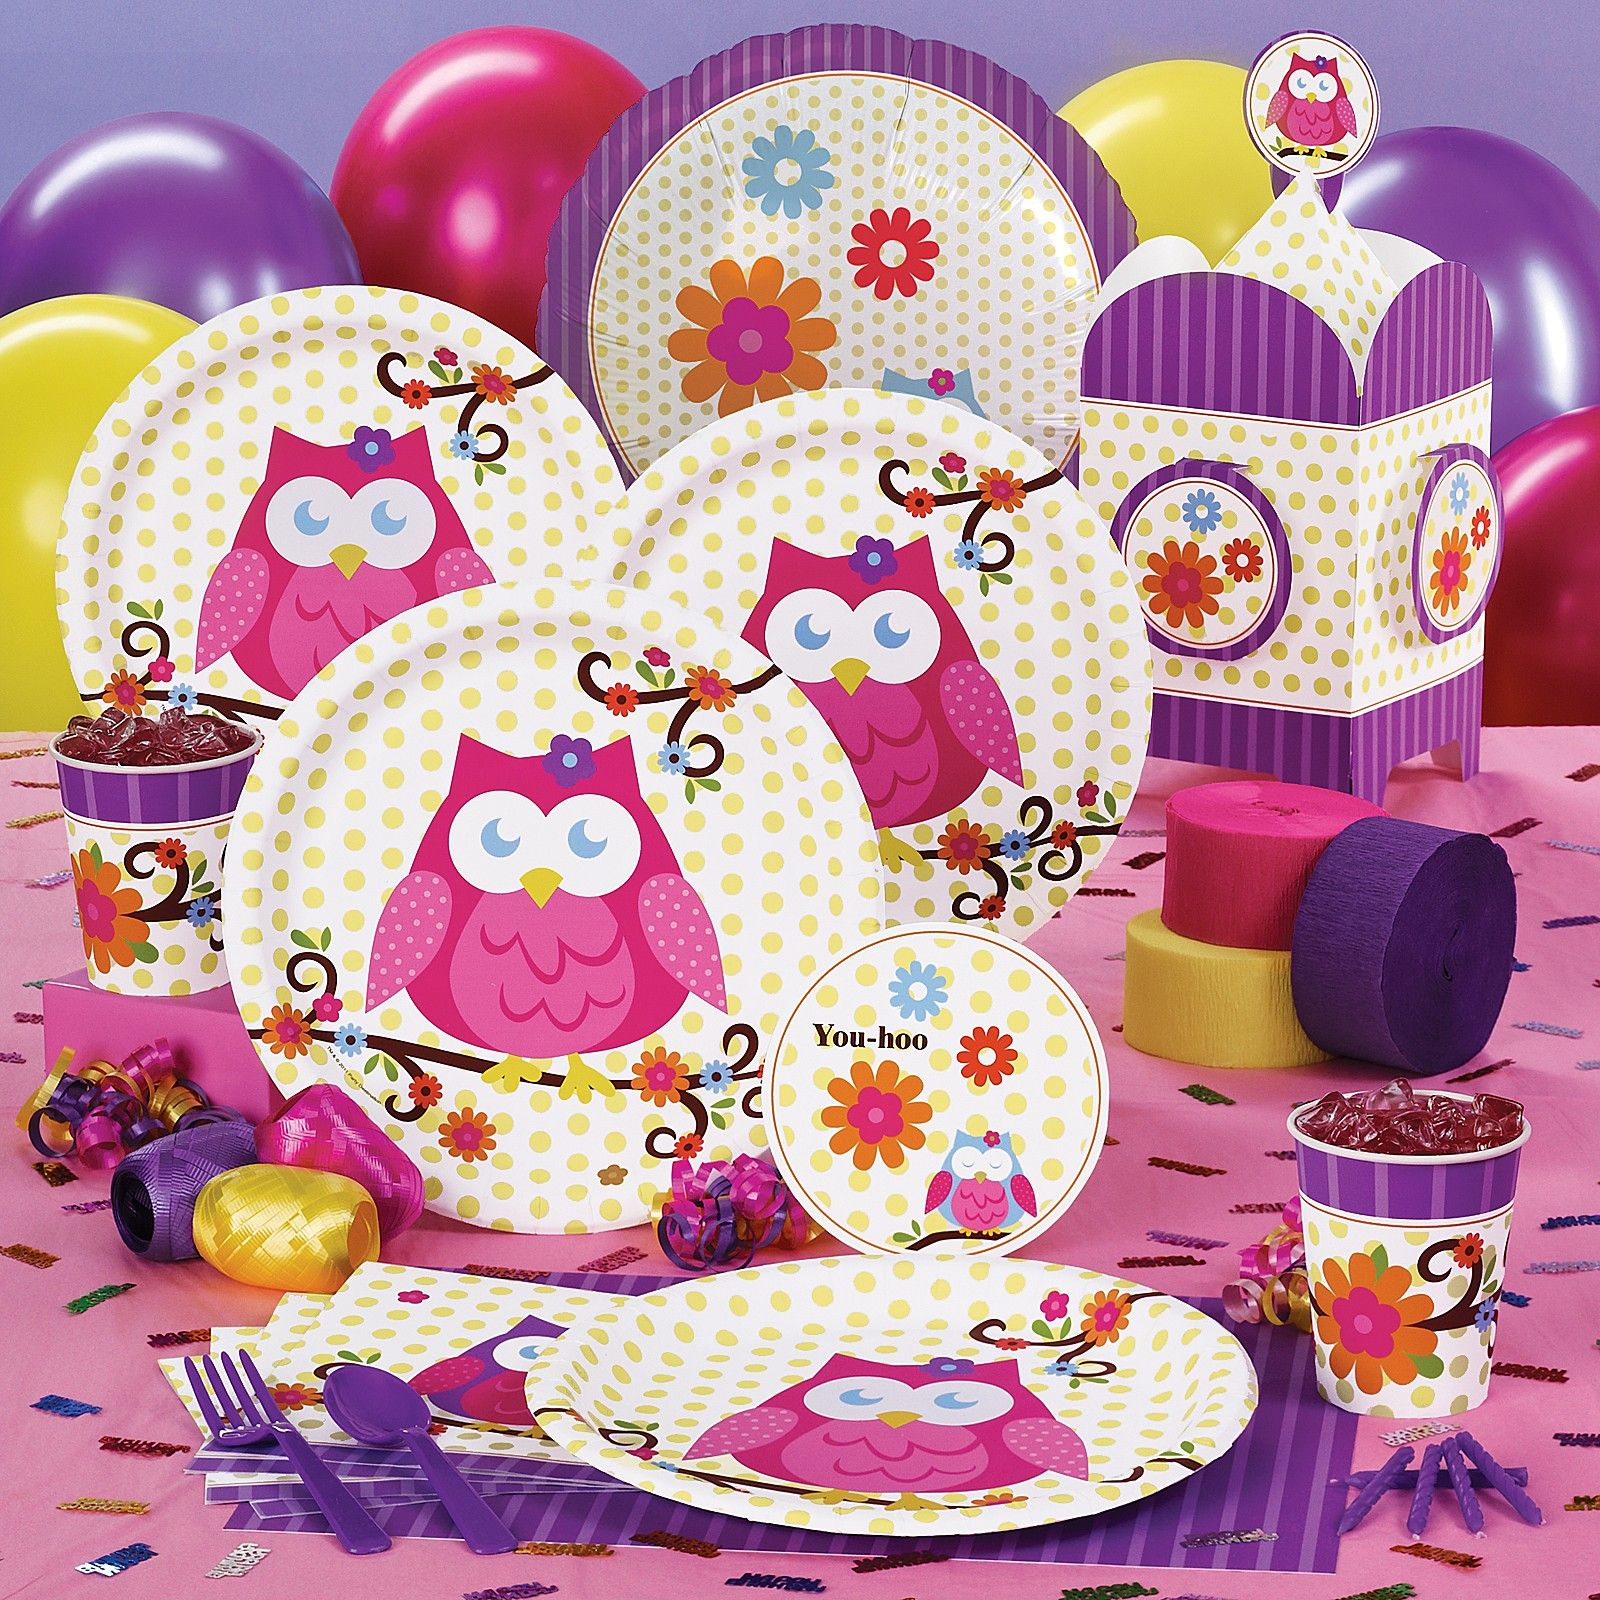 owl party supplies this would b soo fun for a night owl party theme